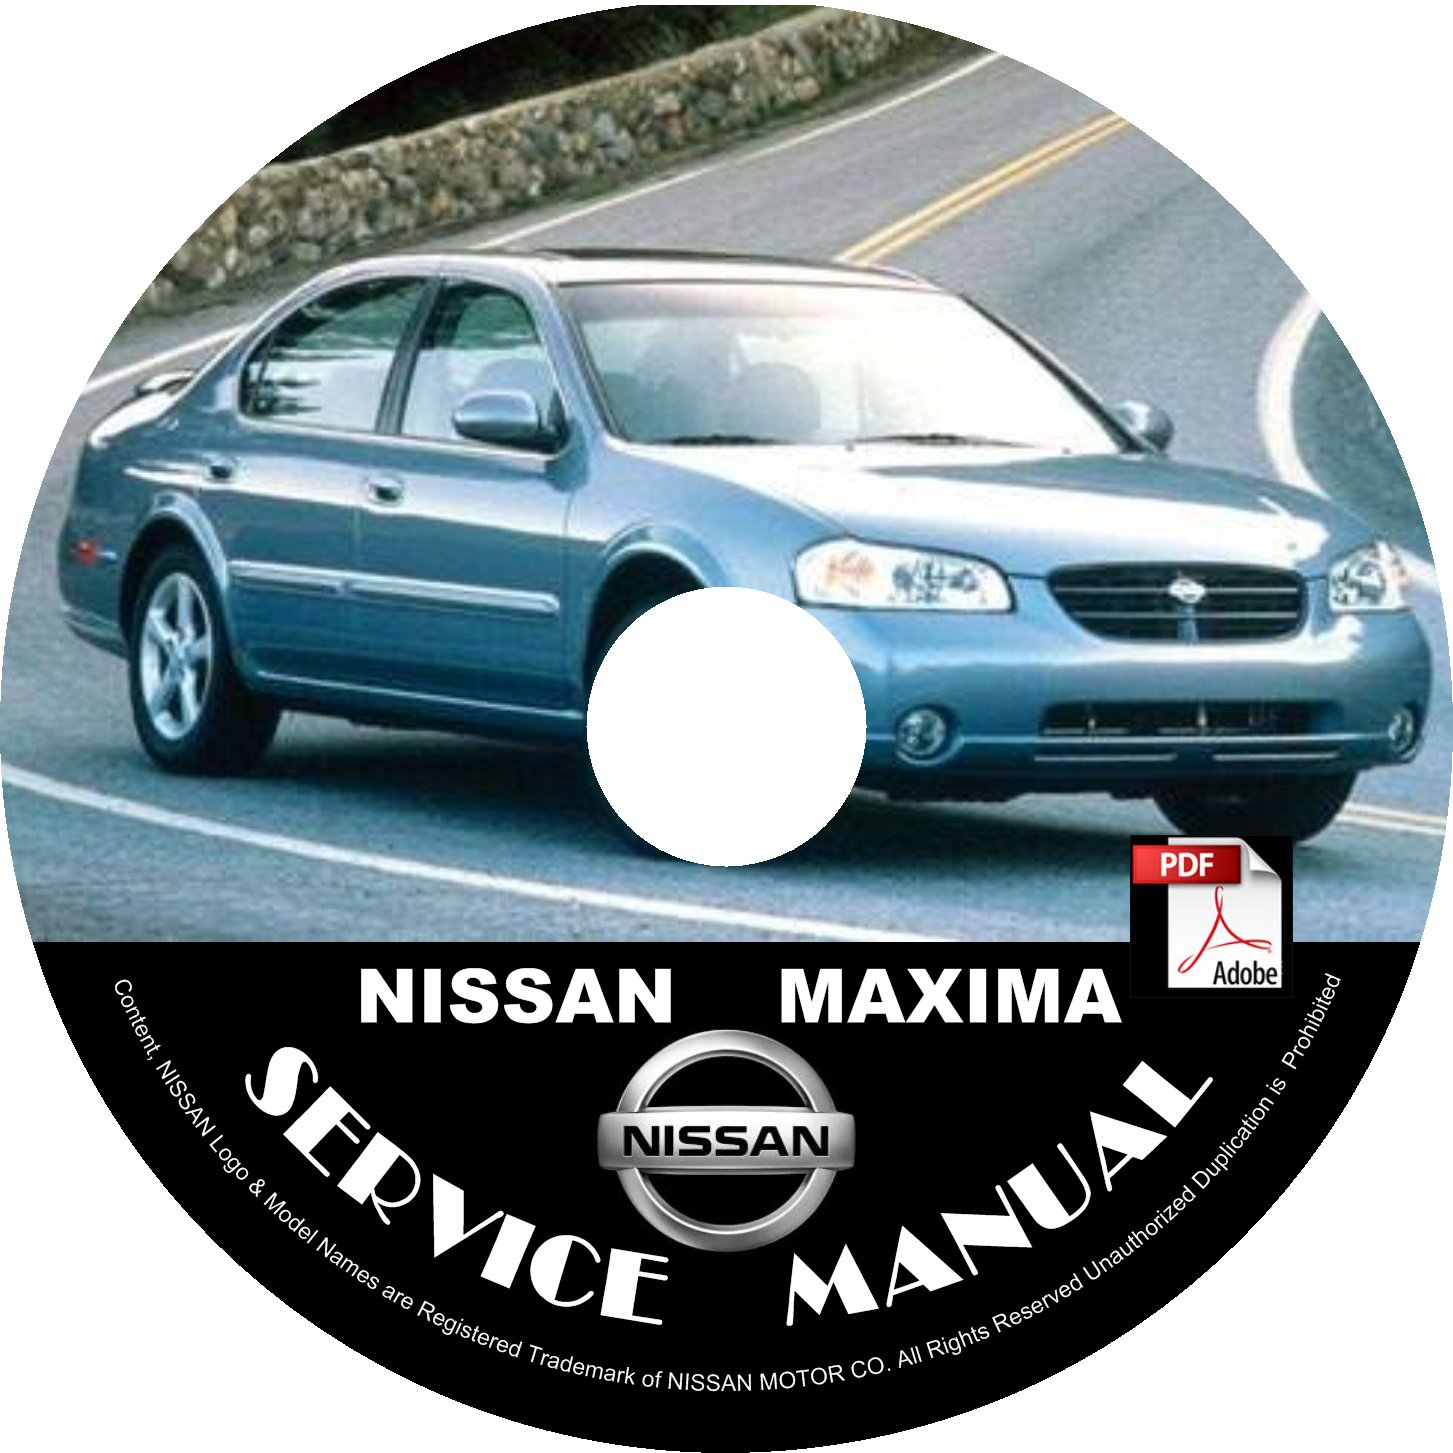 2003 Nissan Maxima Service Repair Shop Manual on CD Fix Repair Rebuild 03 Workshop Guide